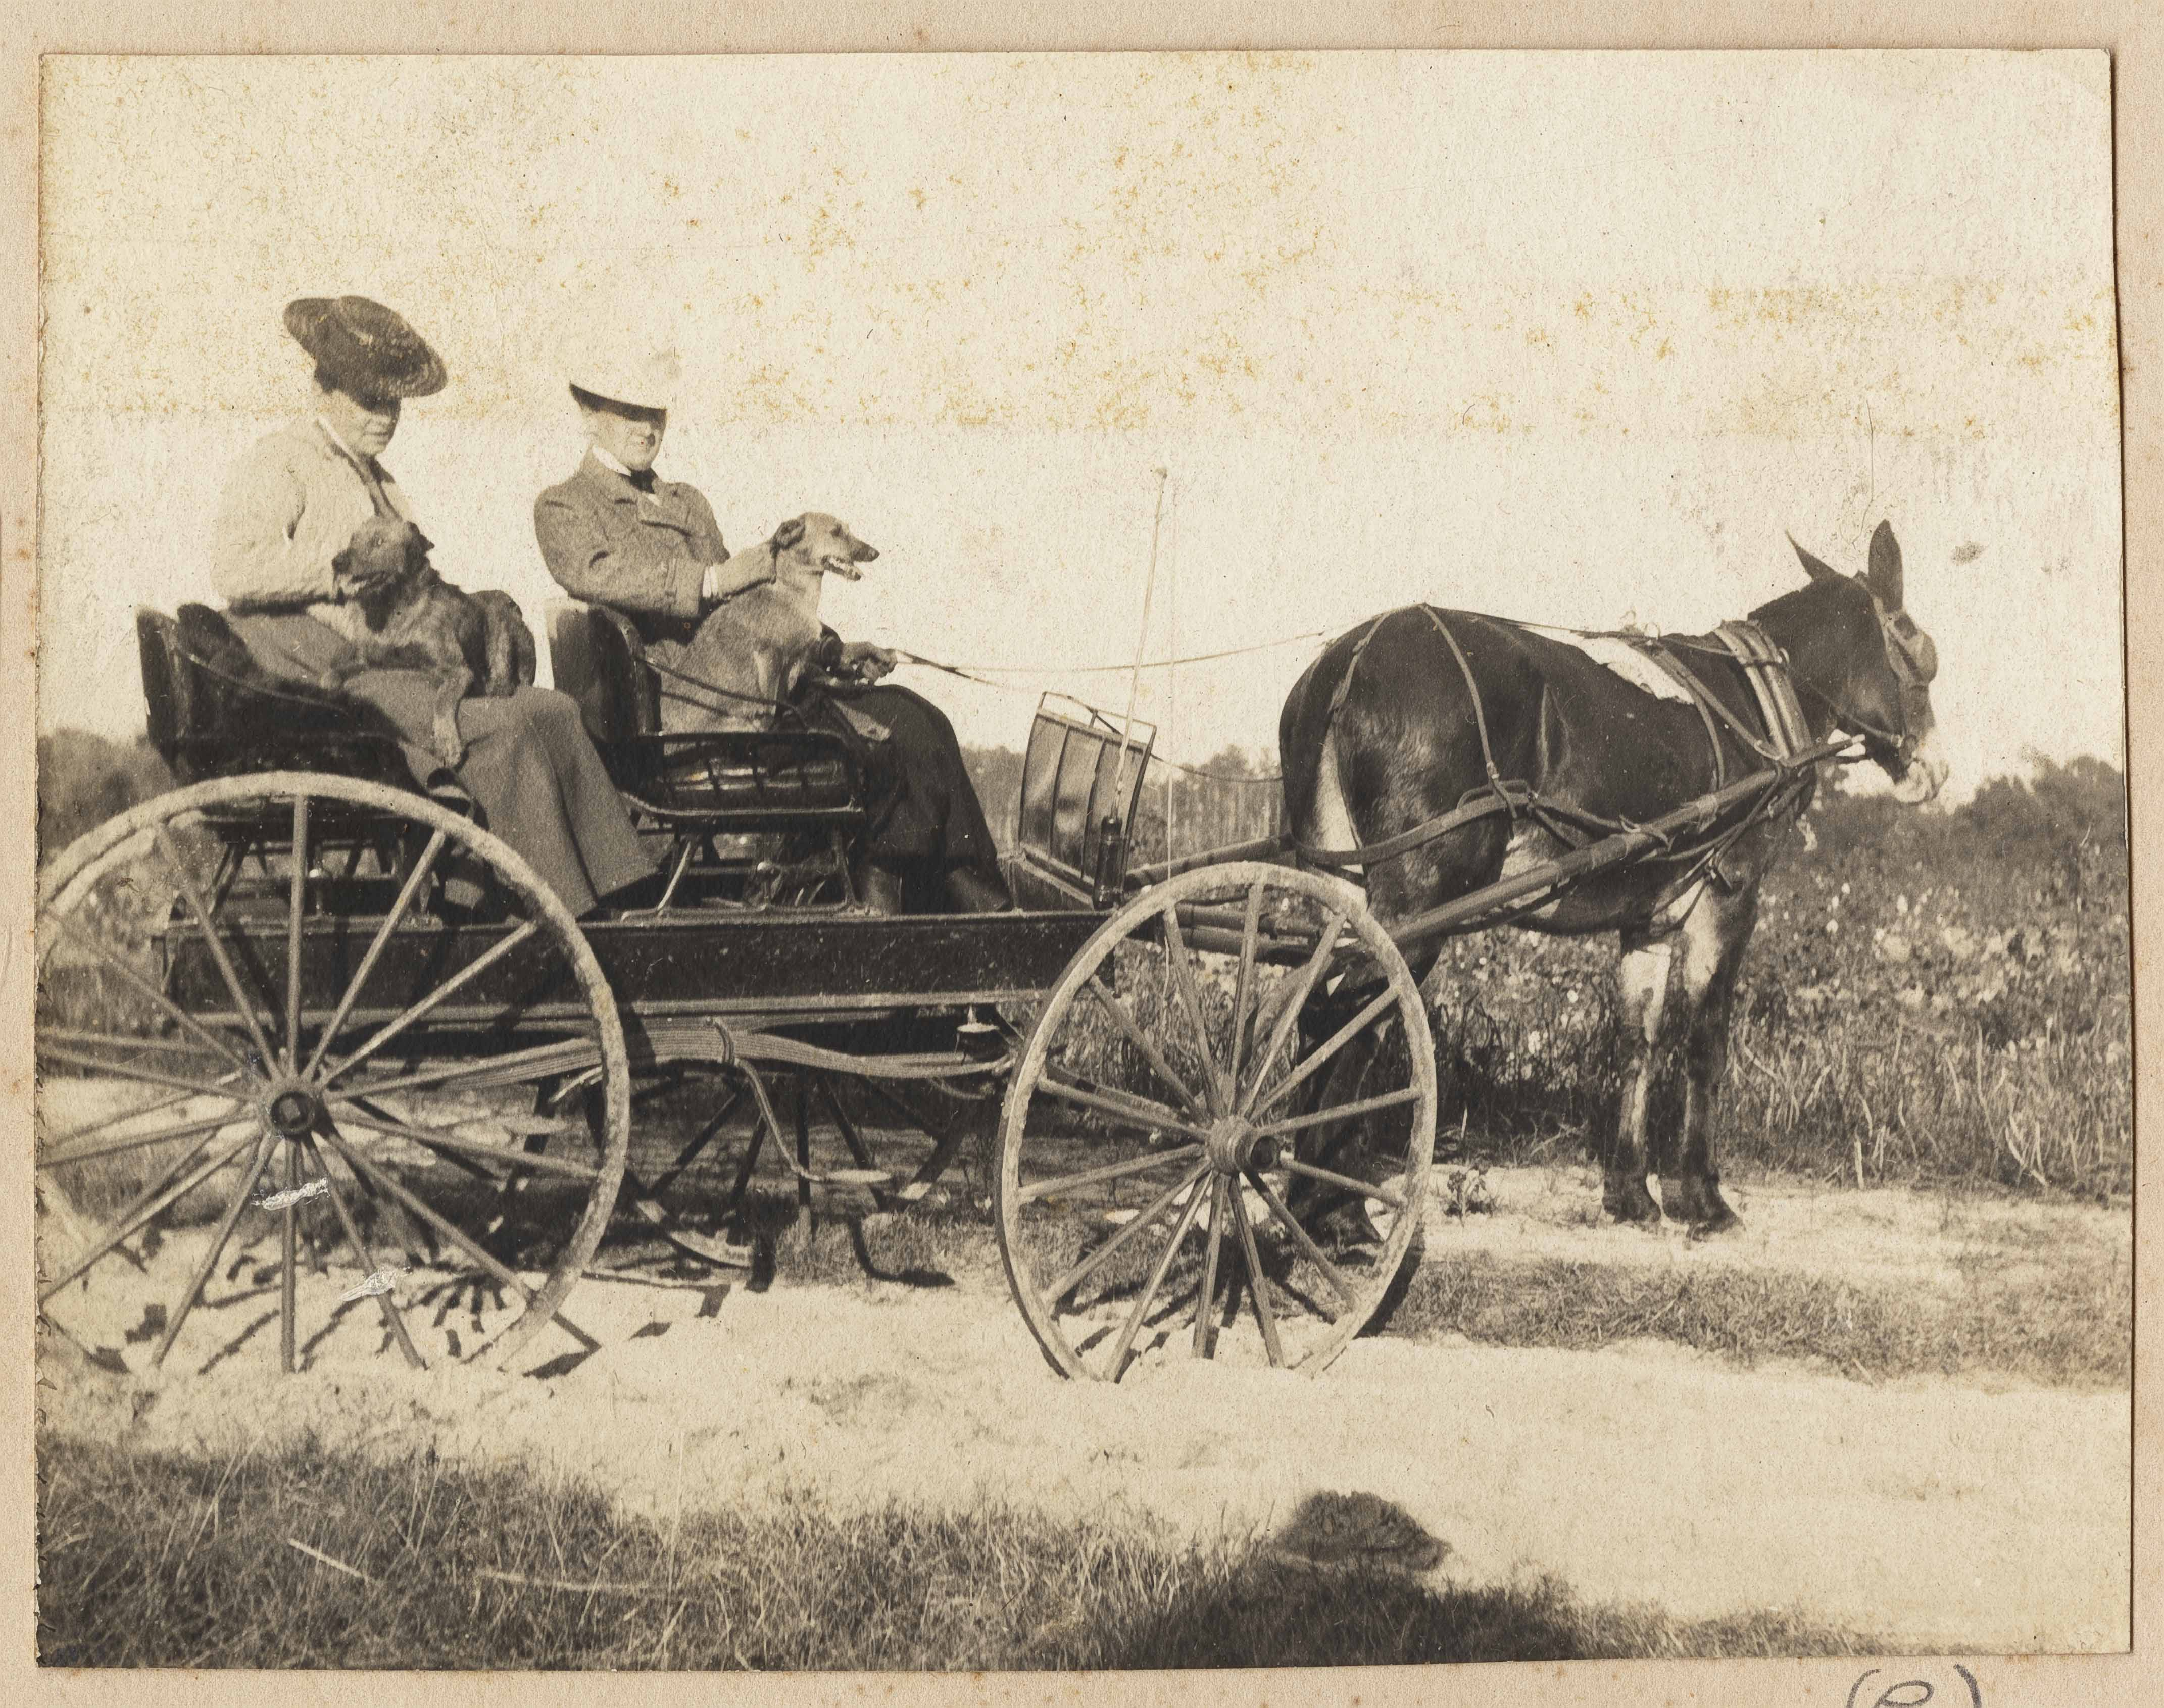 Two women and two dogs in a wagon